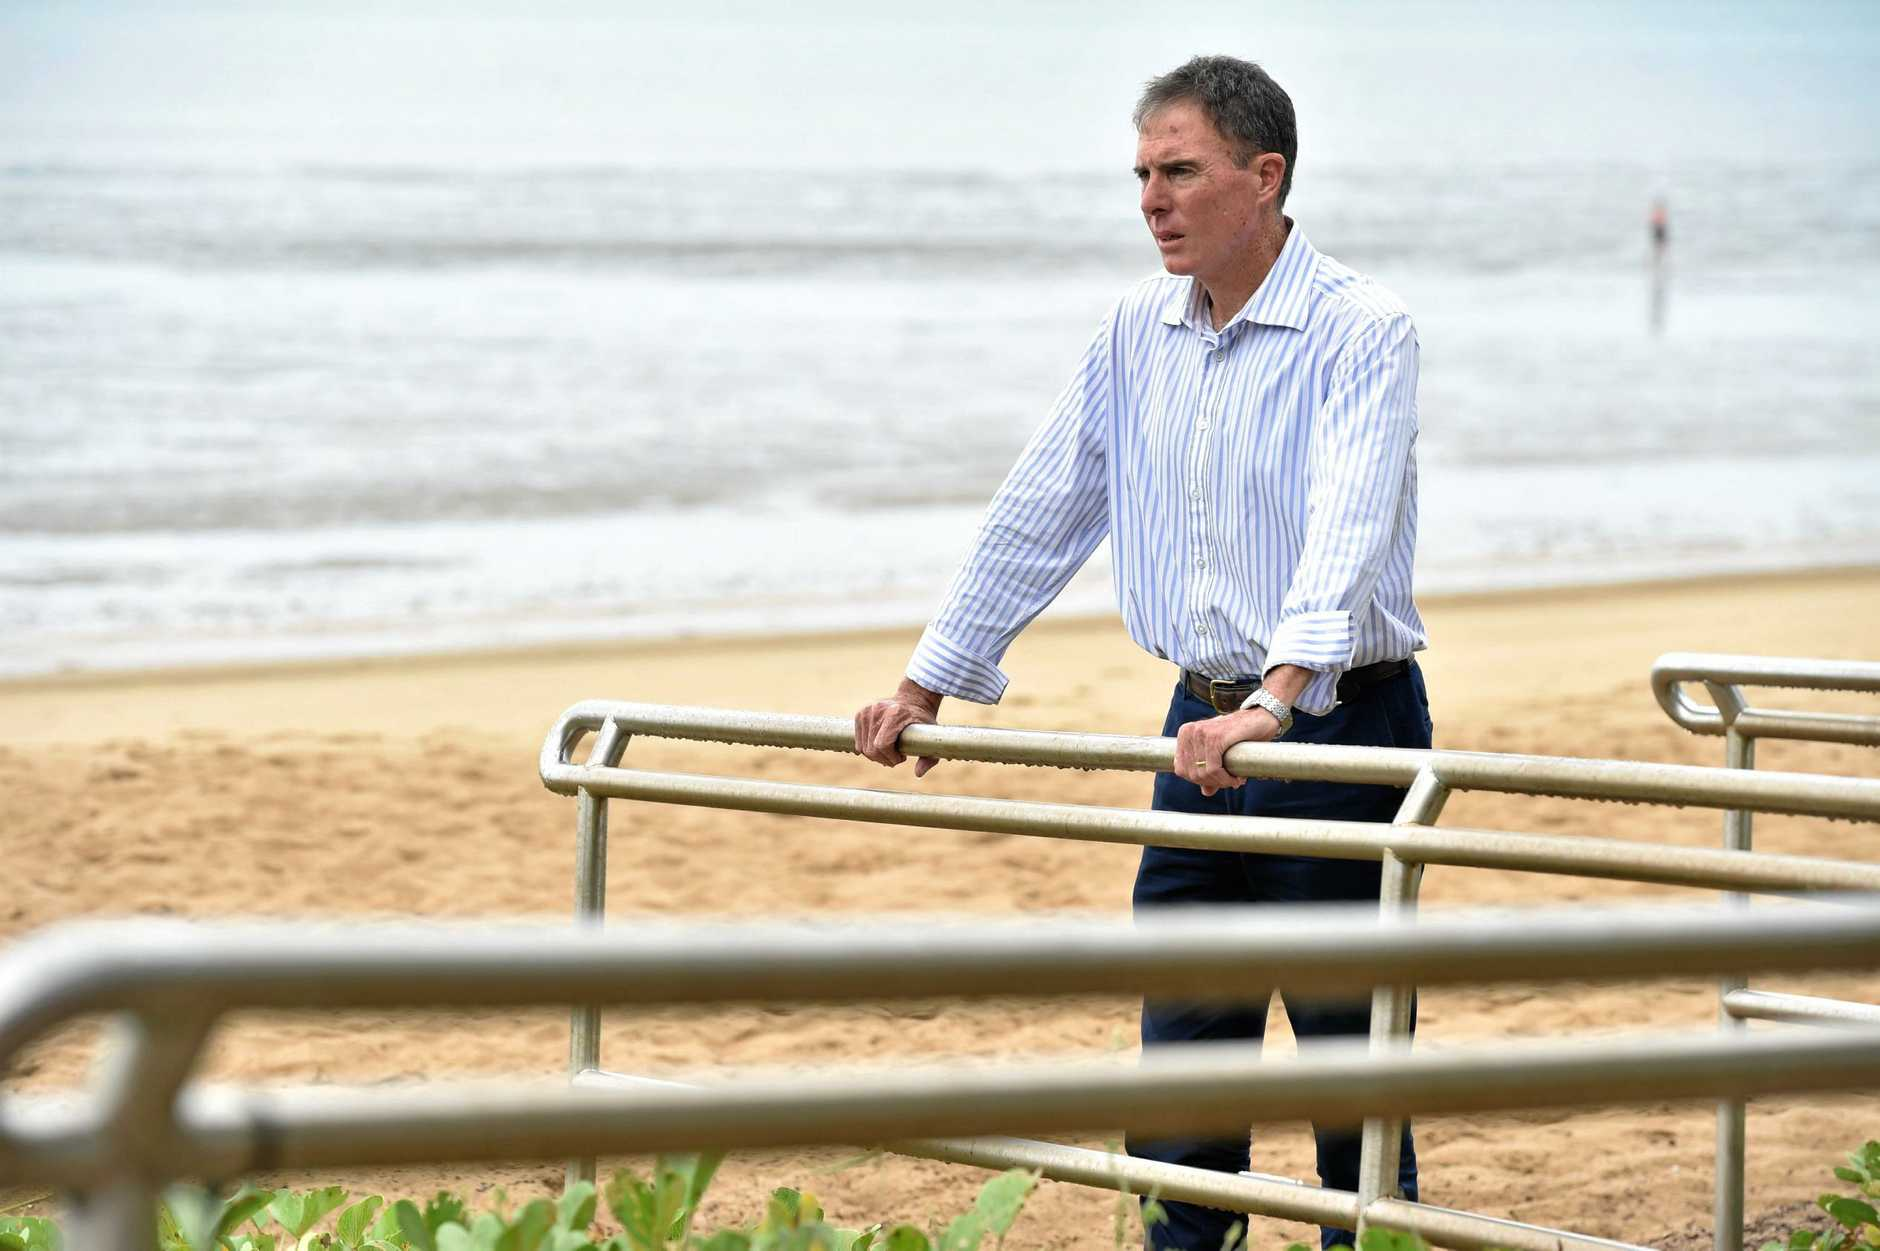 NO RUN: Ex-Fraser Coast Mayor Gerard O'Connell denied rumours he would run in a by-election.